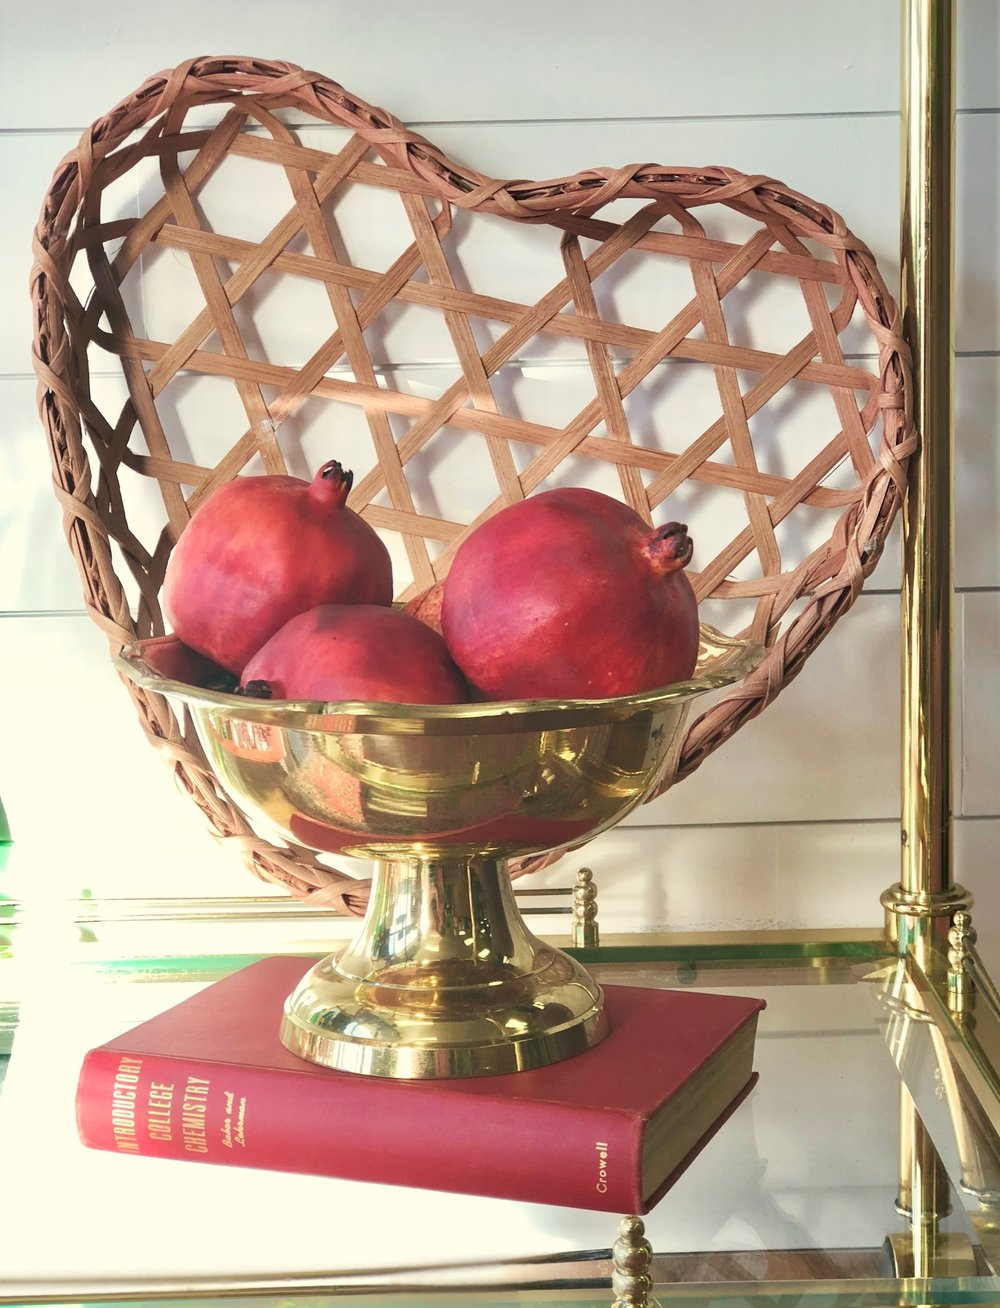 Lush pomegranates in a brass bowl echo the color scheme without being too cheesy, but the heart shaped basket in the background subtly prompts to the special holiday.